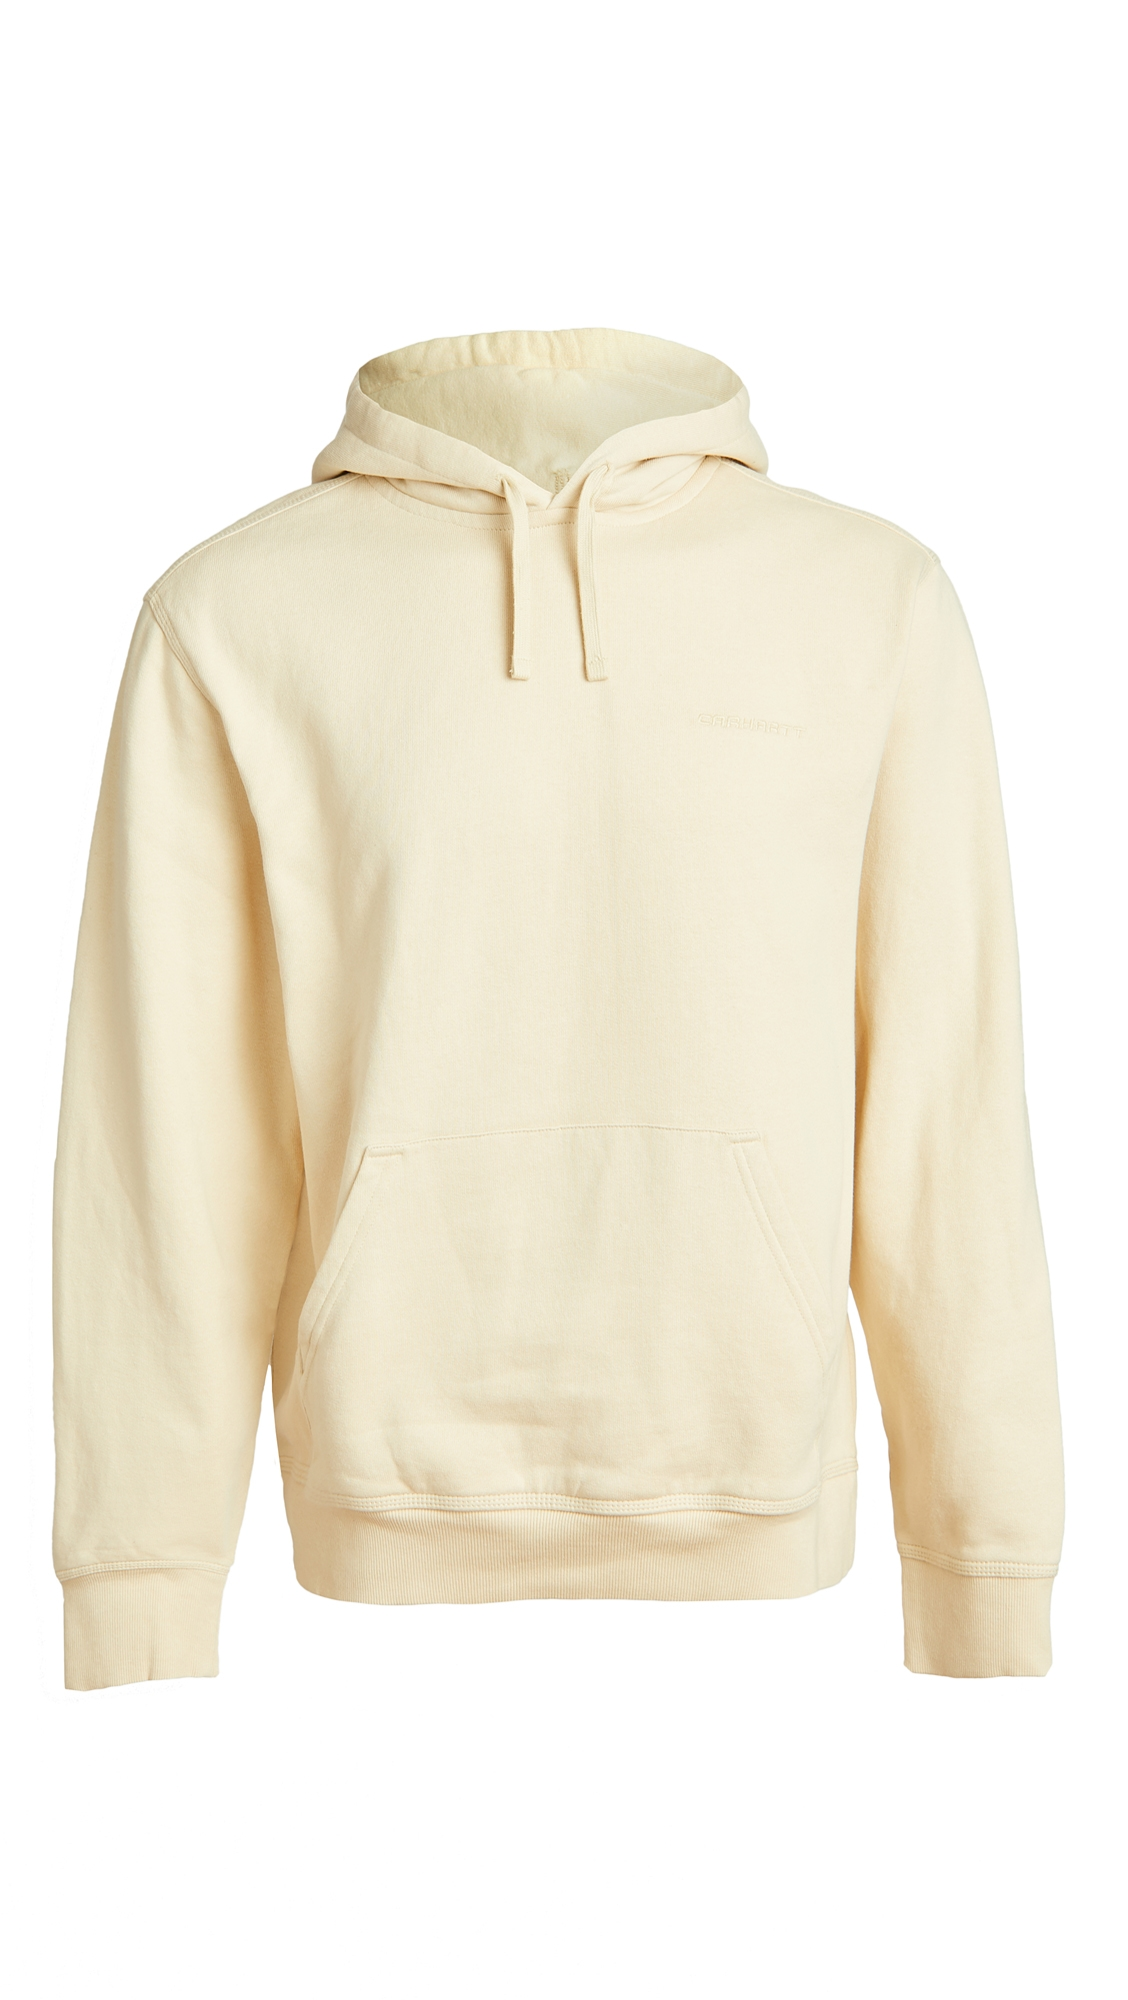 Hooded Ashland Sweatshirt